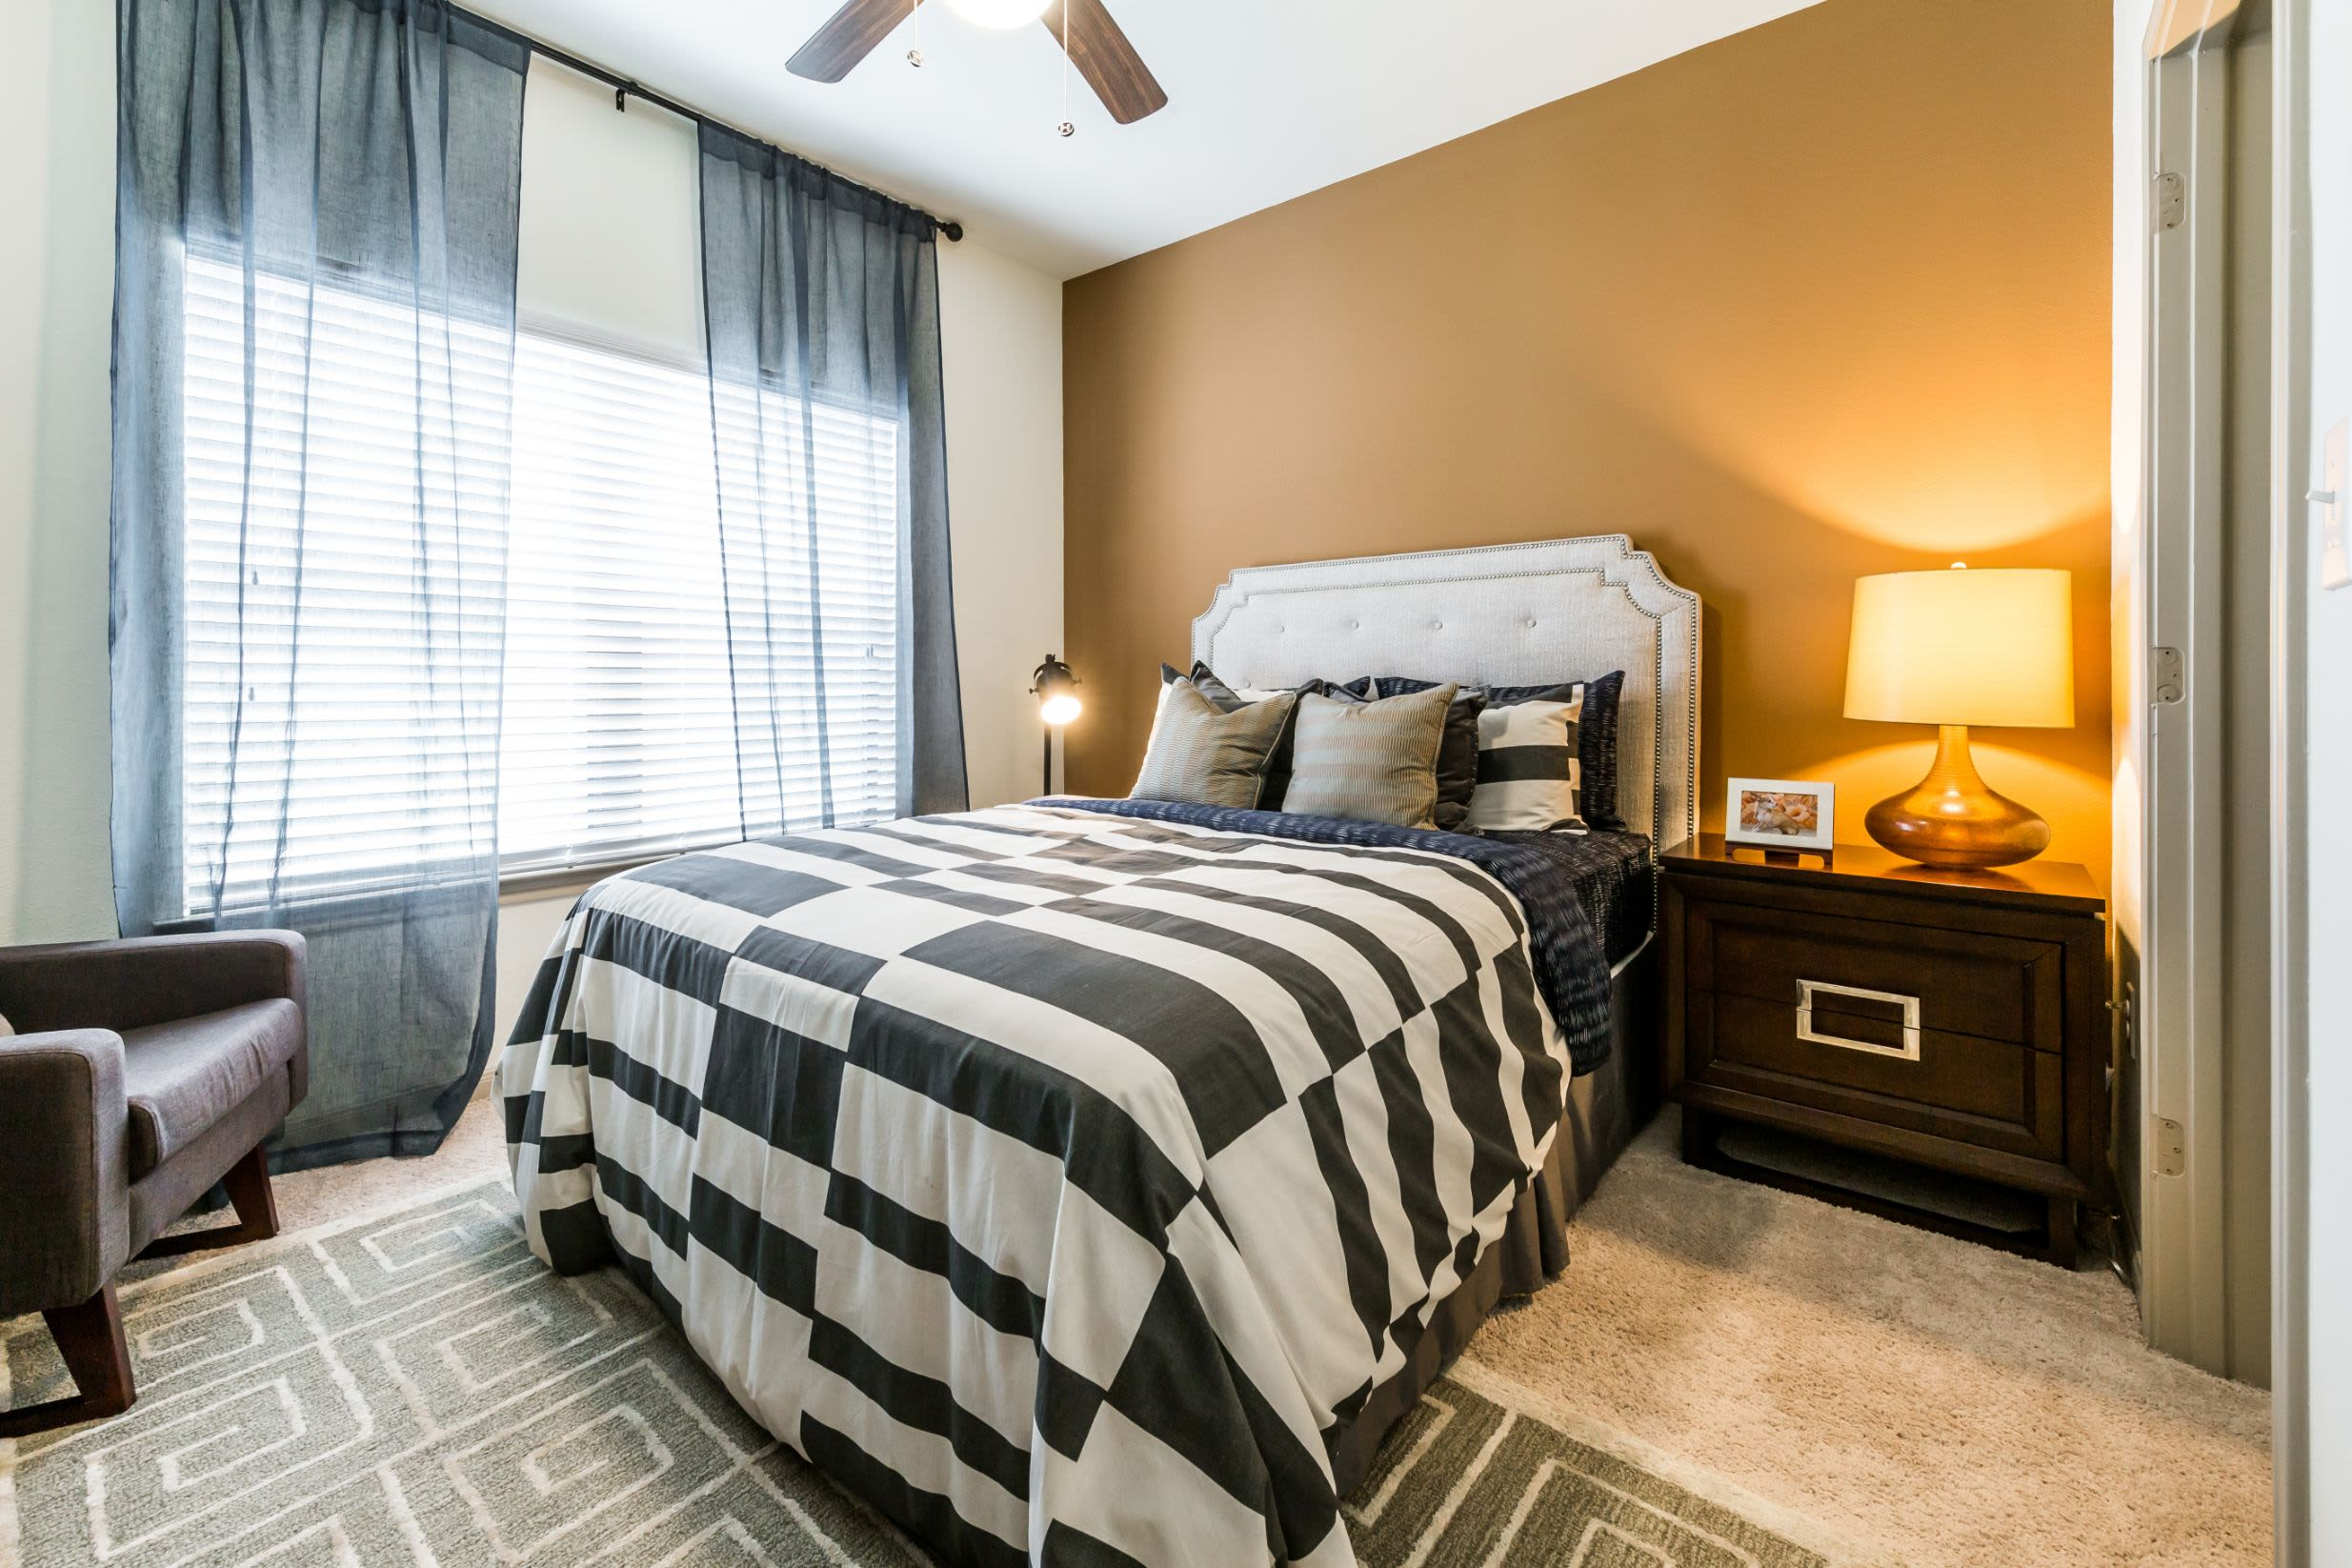 Bedroom with a large window and an accent wall at Marquis on Lakeline in Cedar Park, Texas